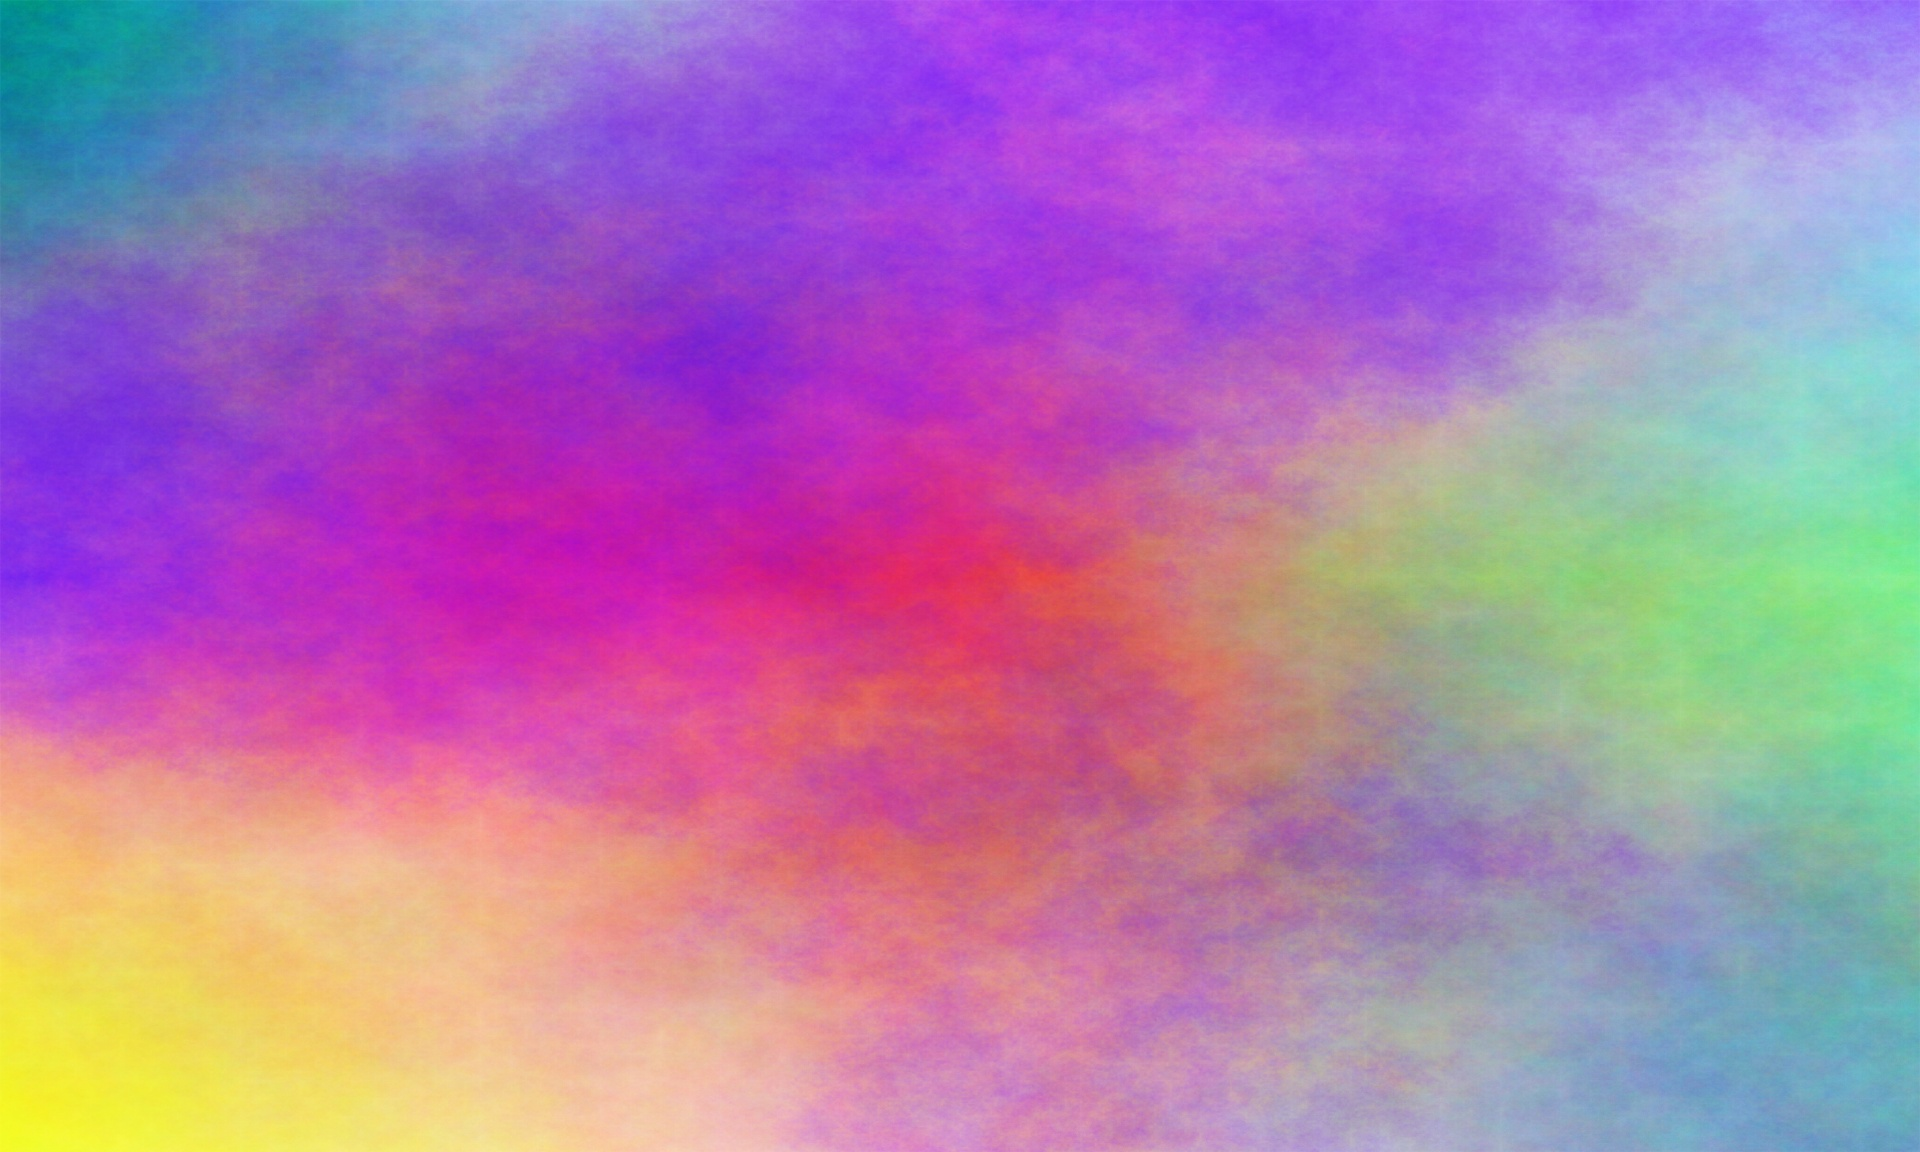 Background Abstract Colors Colorful Rainbow Free Image